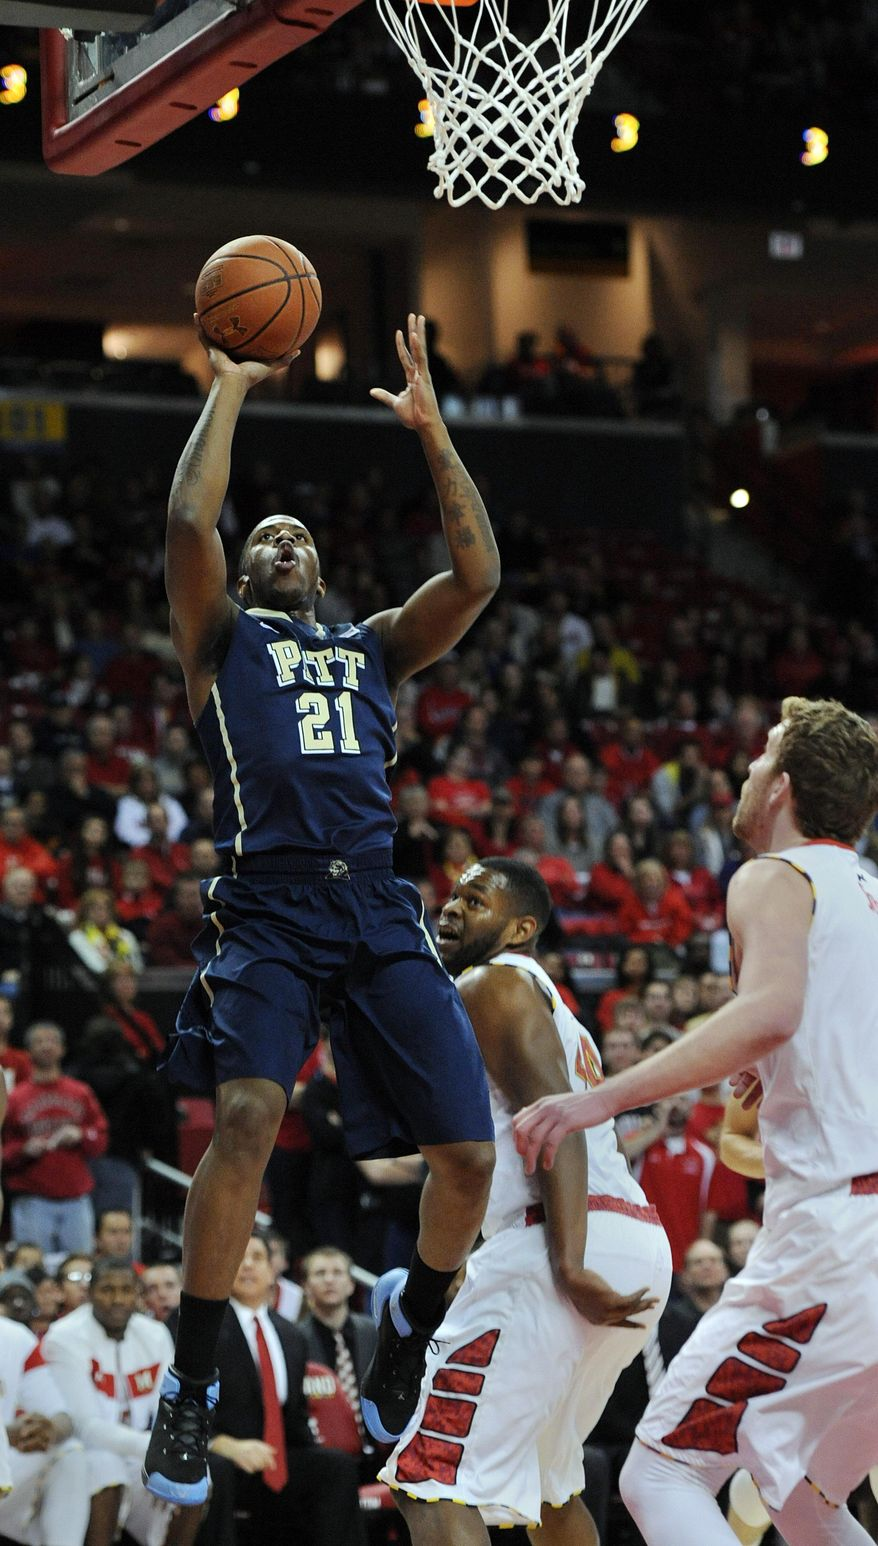 Pittsburgh's Lamar Patterson, left, shoots against Maryland in the first half of an NCAA college basketball game Saturday, Jan. 25, 2014, in College Park, Md. (AP Photo/Gail Burton)